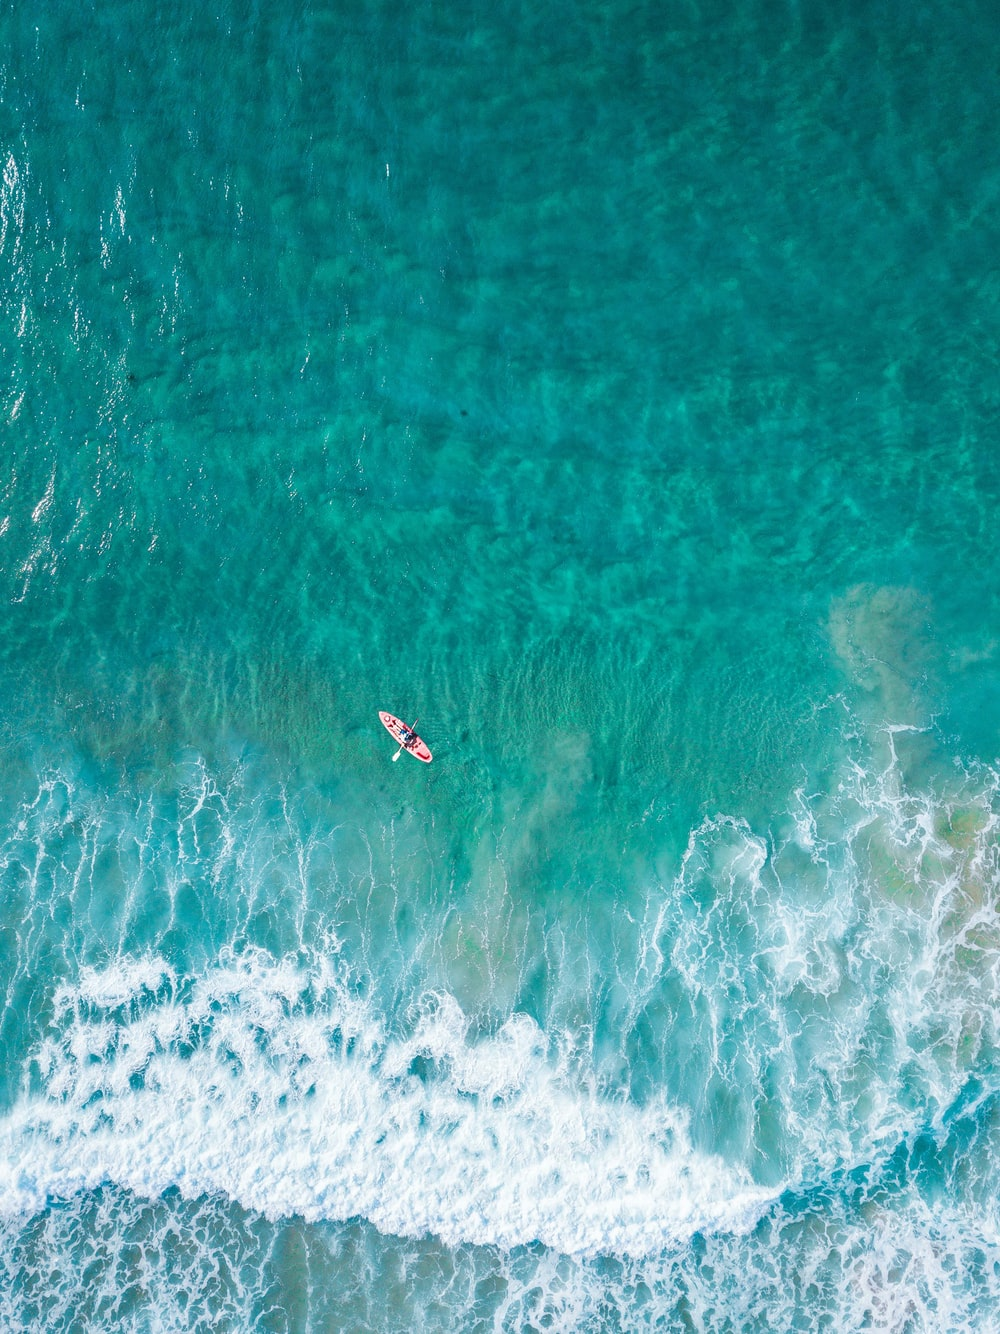 aerial view of person at the boat on the ocean